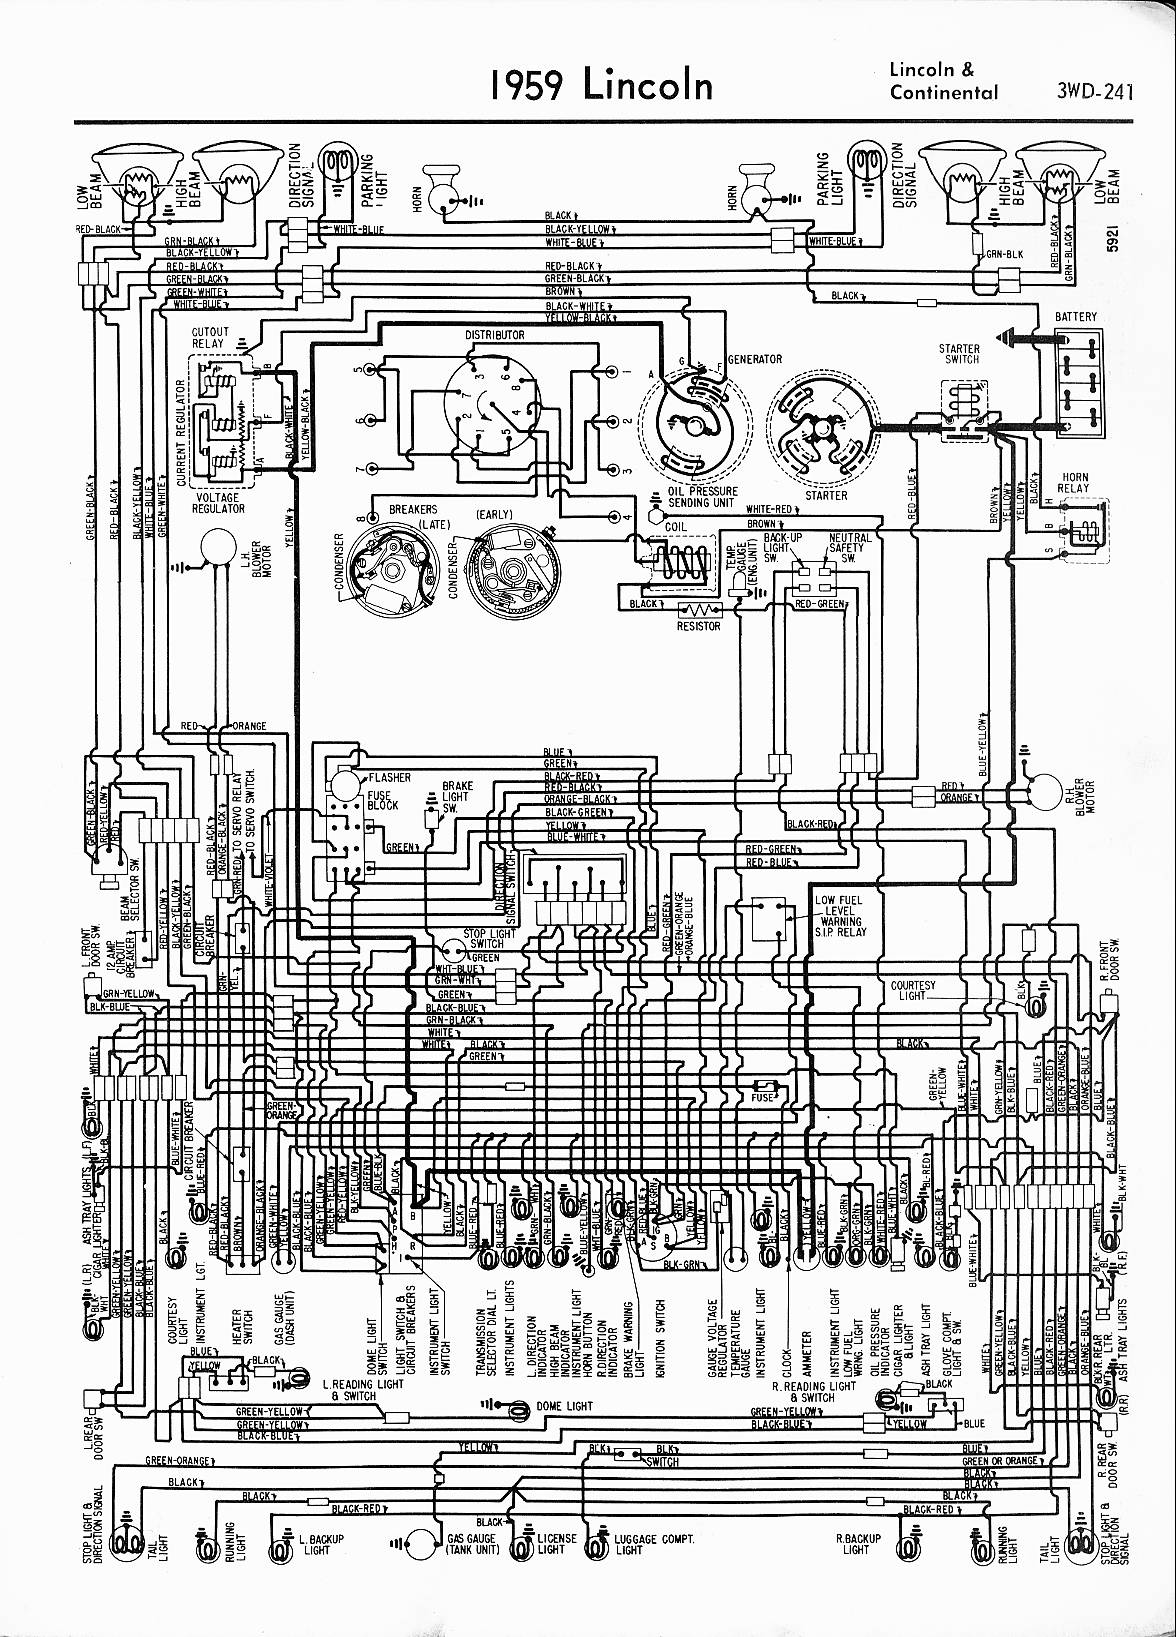 lincoln continental wiring diagram wire center u2022 rh linxglobal co 1966 lincoln continental wiring diagram 1966 lincoln continental convertible wiring diagram